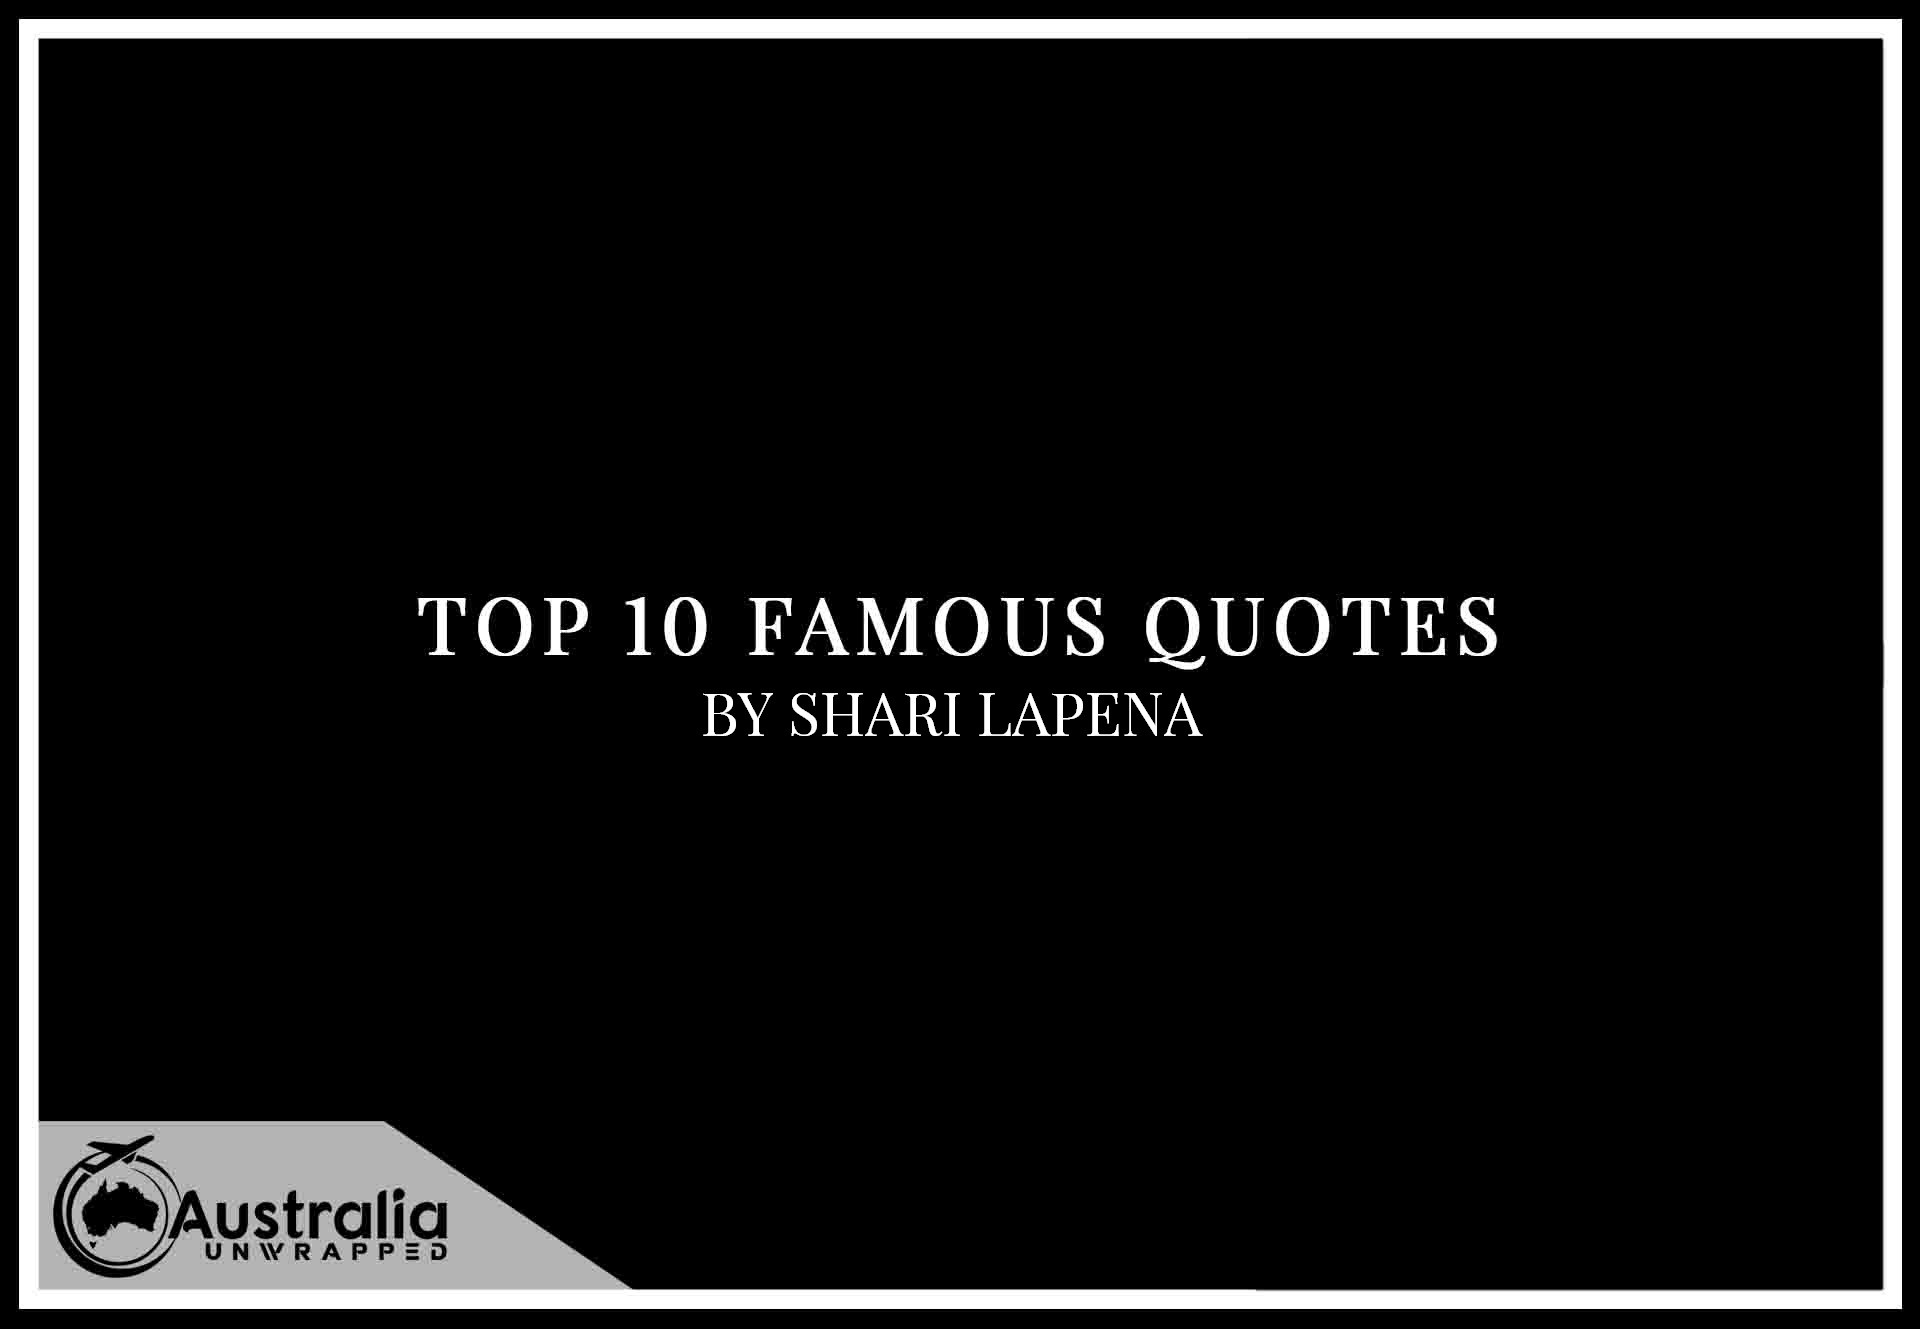 Top 10 Famous Quotes by Author Shari Lapena